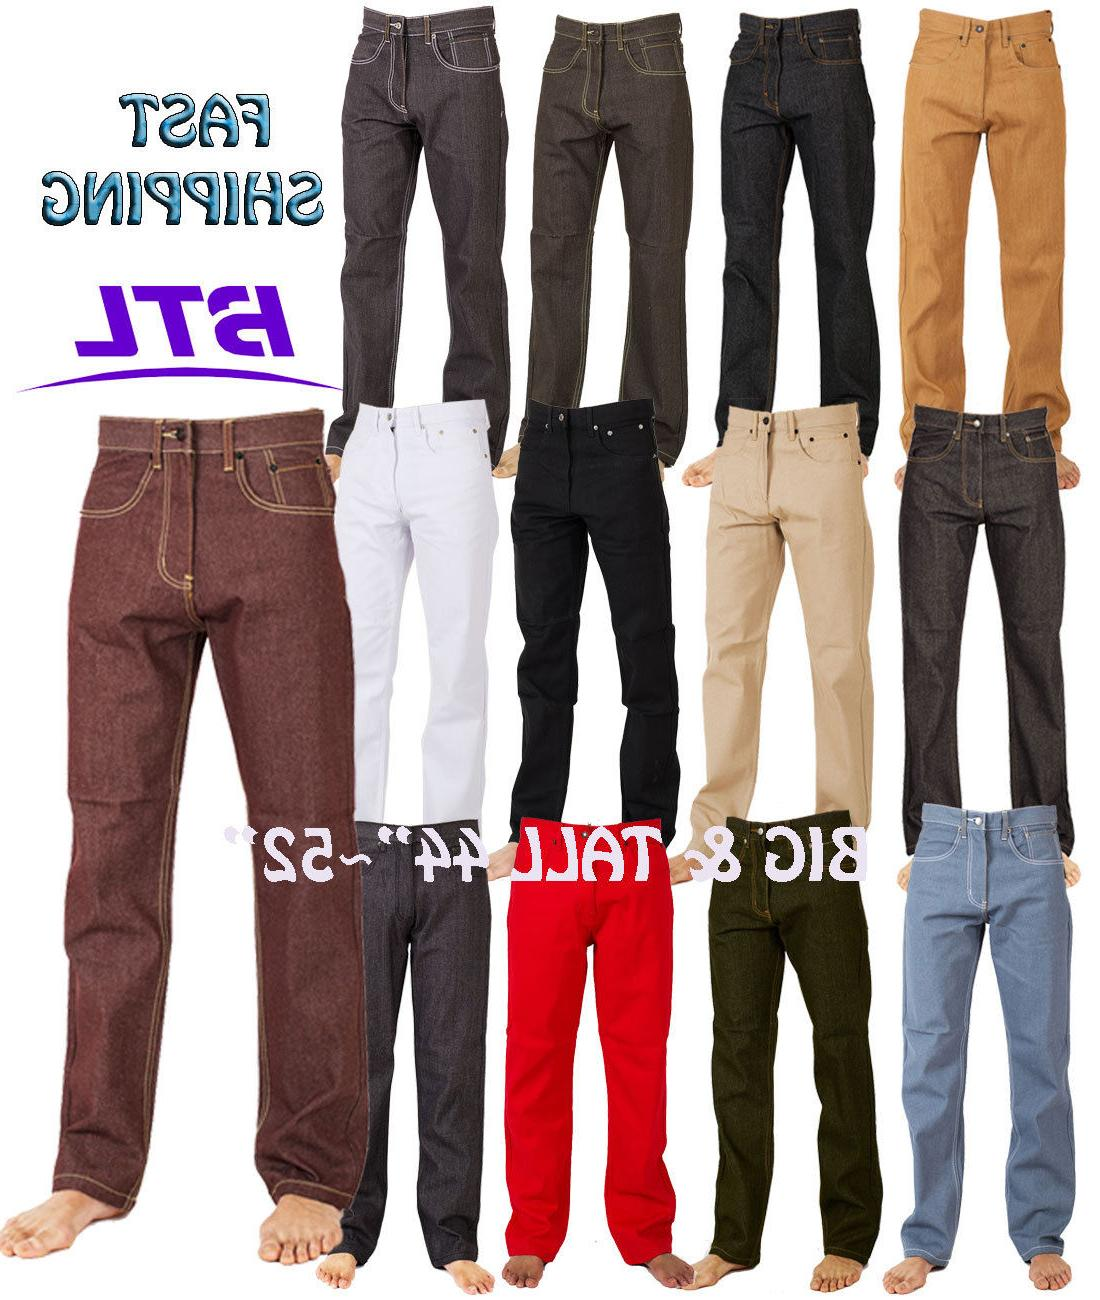 MEN JEANS TALL RELAXED FIT